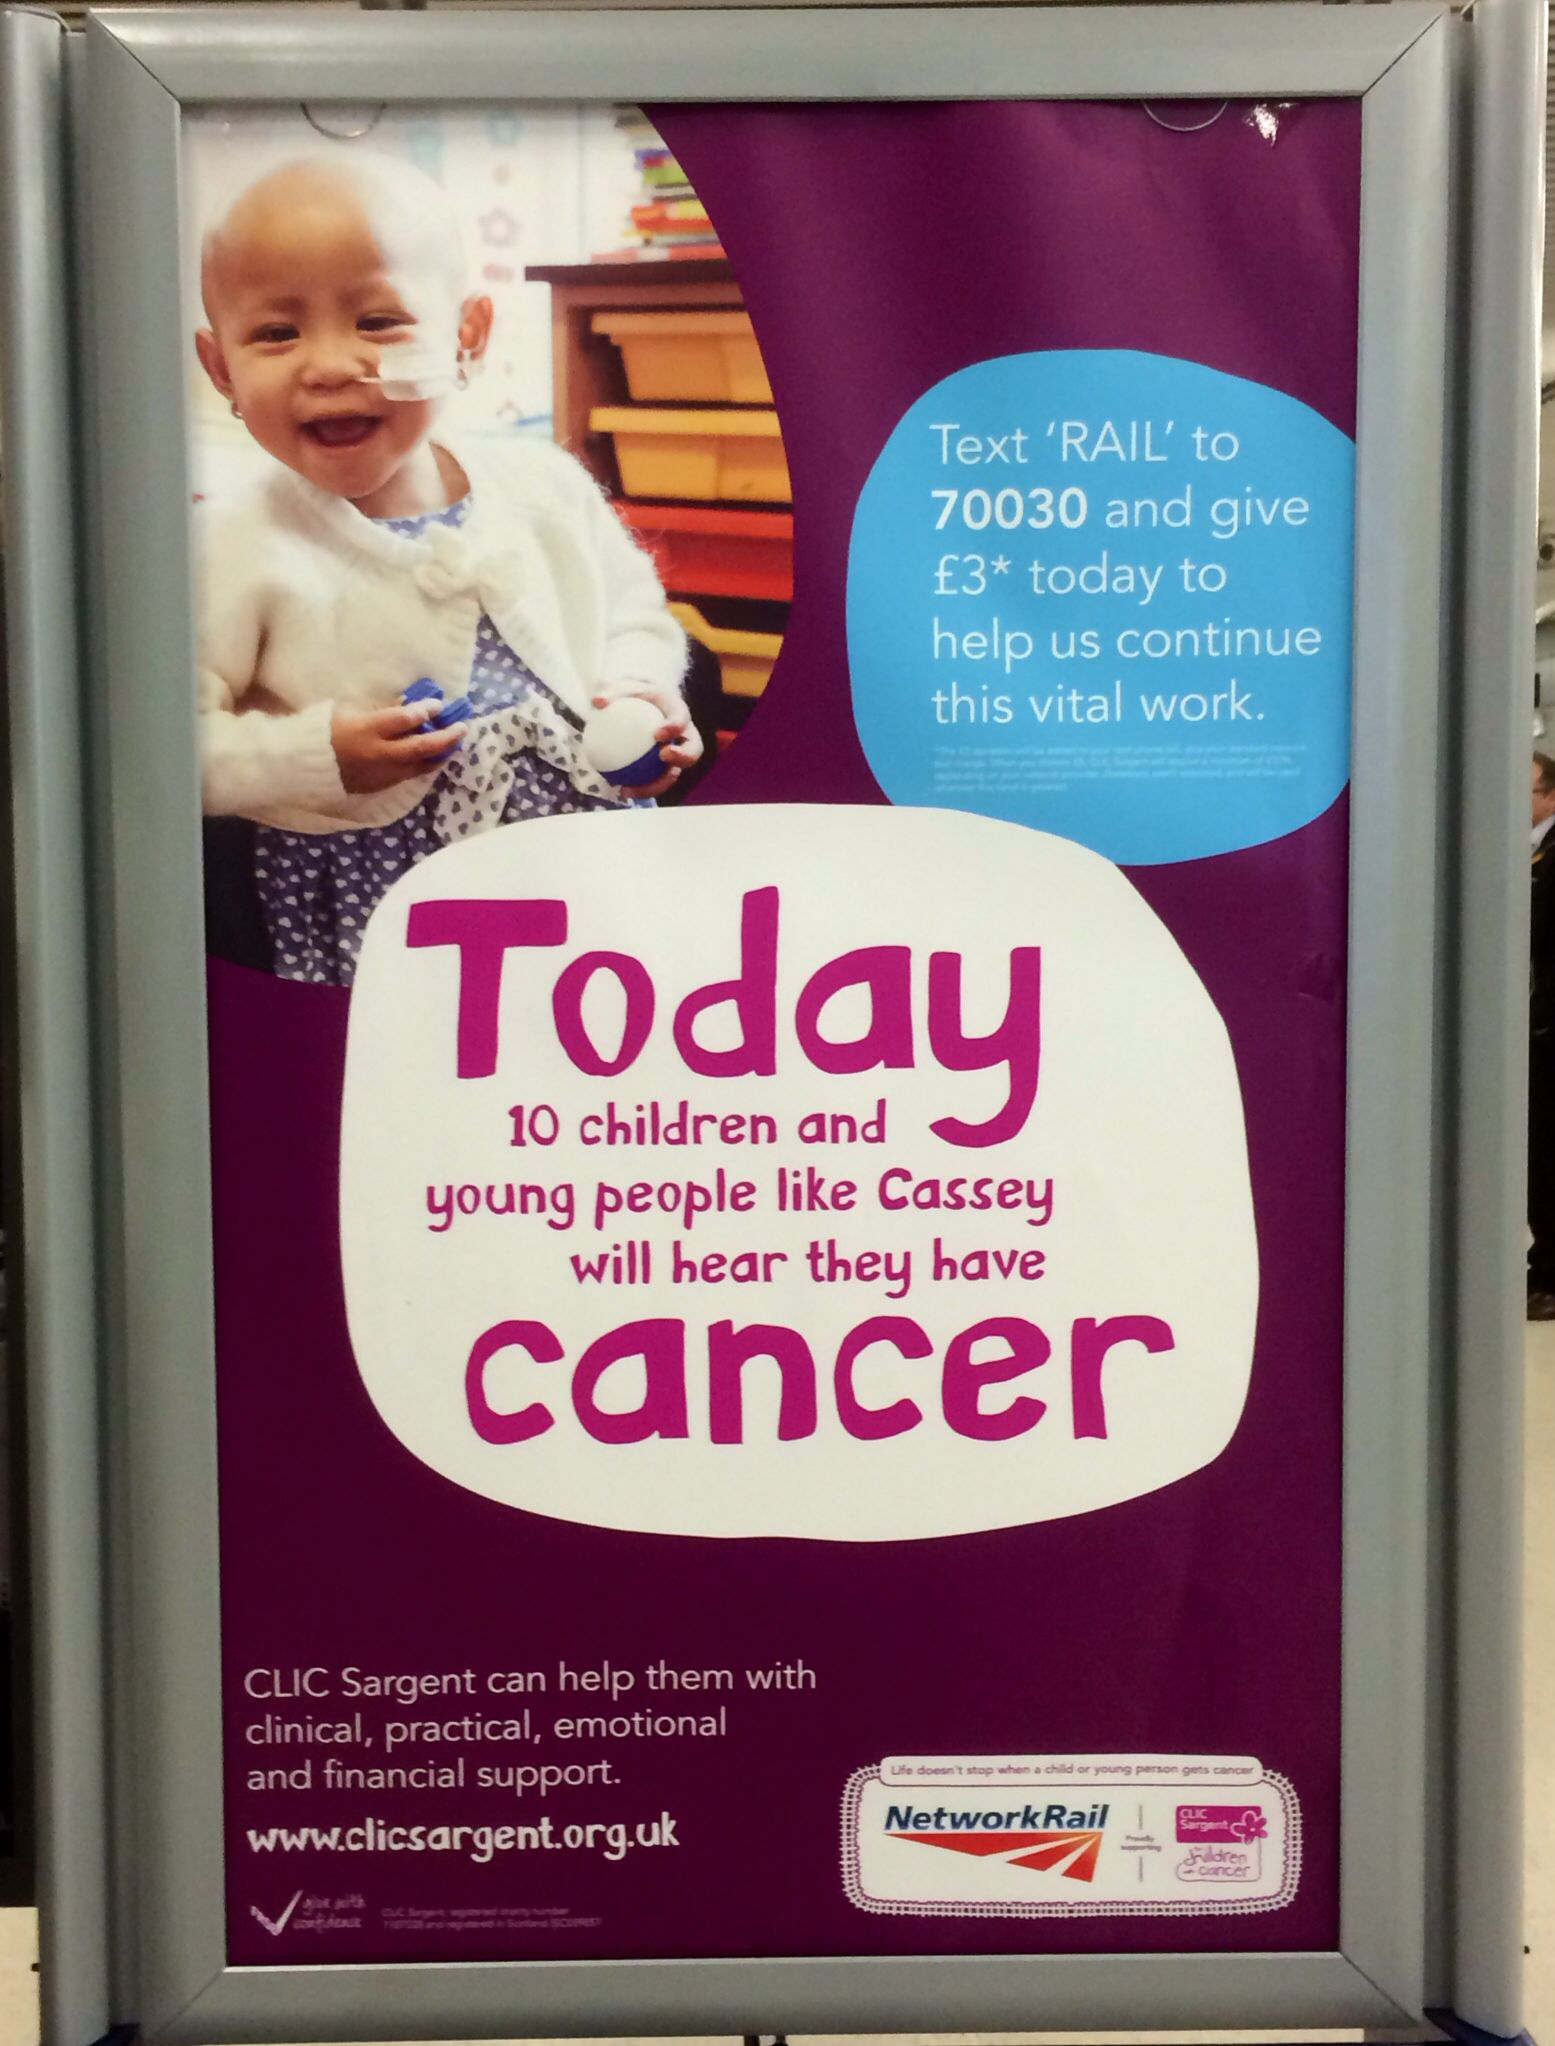 Here's a charity poster where CLICK Sargent are asking for donations of £3 by text message to support their work with children who have cancer. Network Rail are featured as a corporate supporter. We guess they hopefully give them this kind of high footfall ad space for free but who knows! #clicsargent #charity #poster